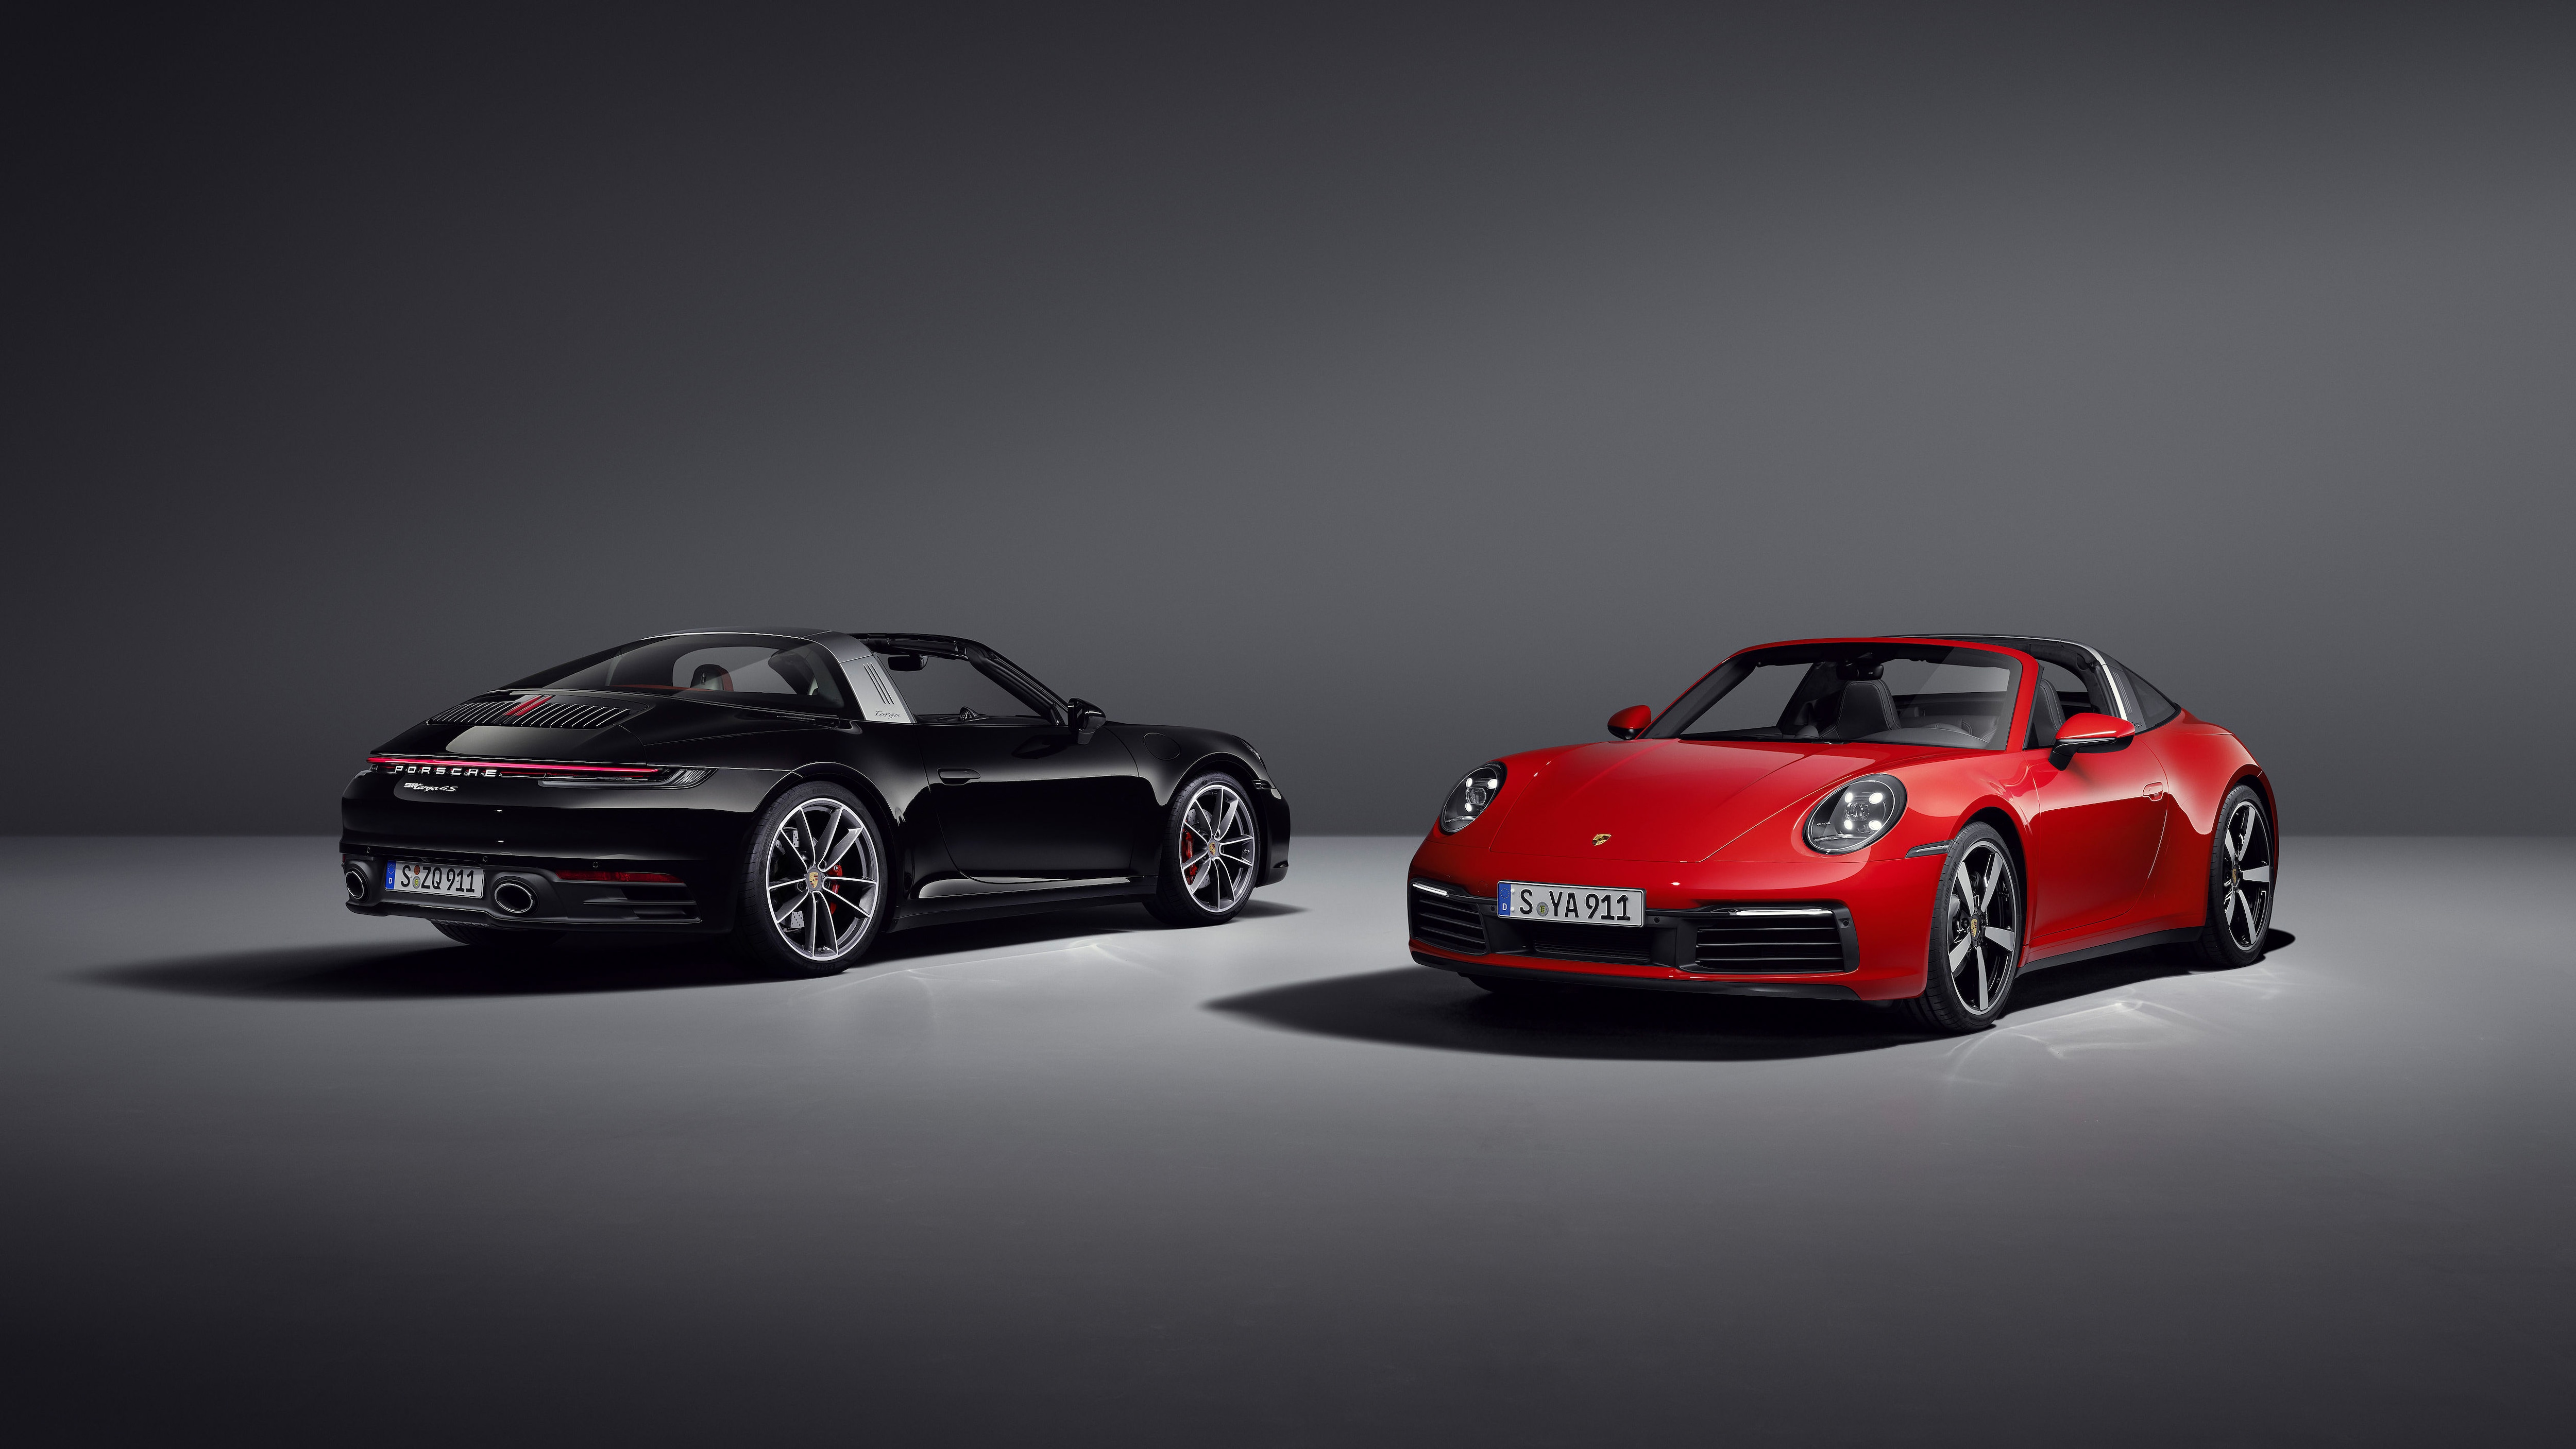 Porsche took to digital platform to officially unveil the 2021 911 Targa which was supposed to be launched at the 2020 Beijing Motor Show that stands cancelled due to the coronavirus pandemic.